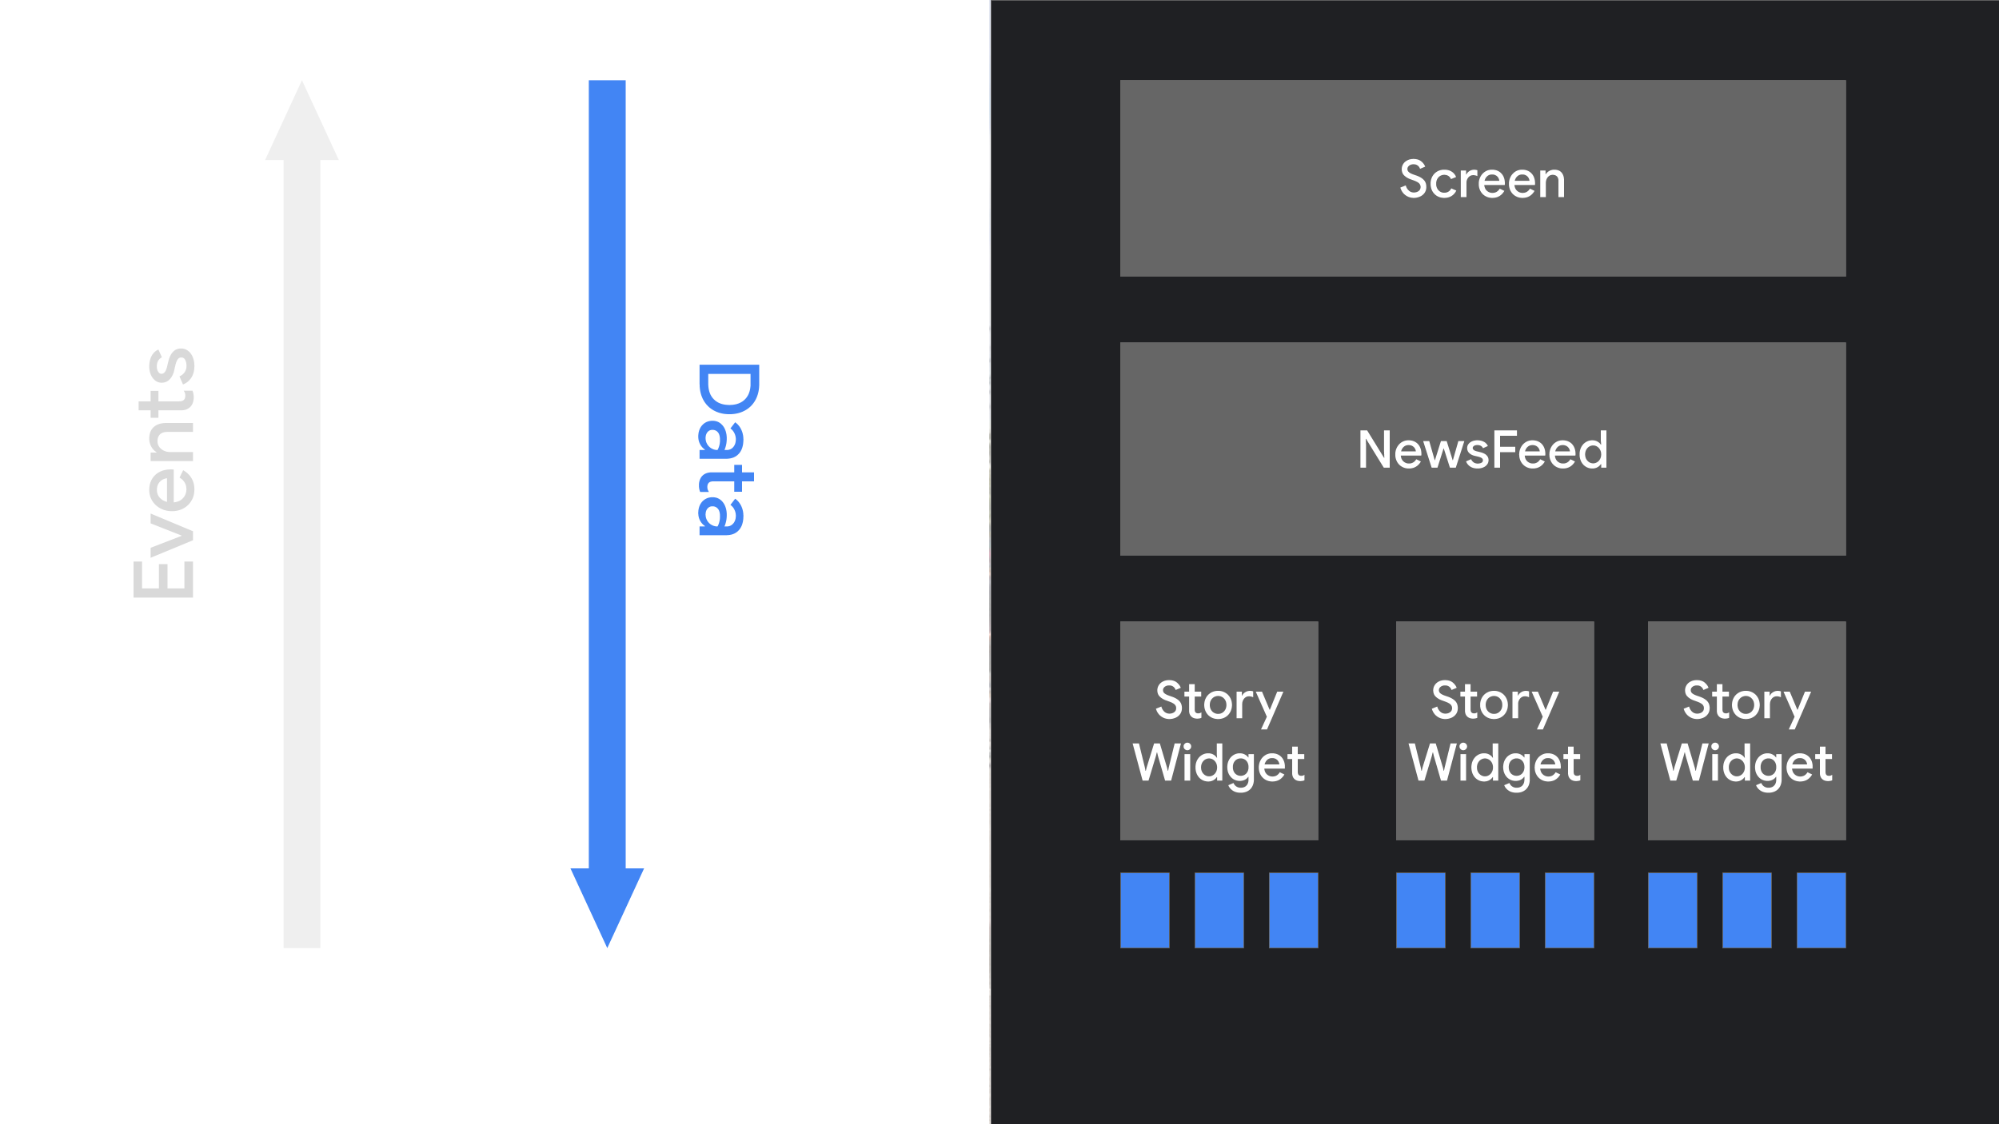 Illustration of the flow of data in a Compose UI, from high-level objects down to their children.